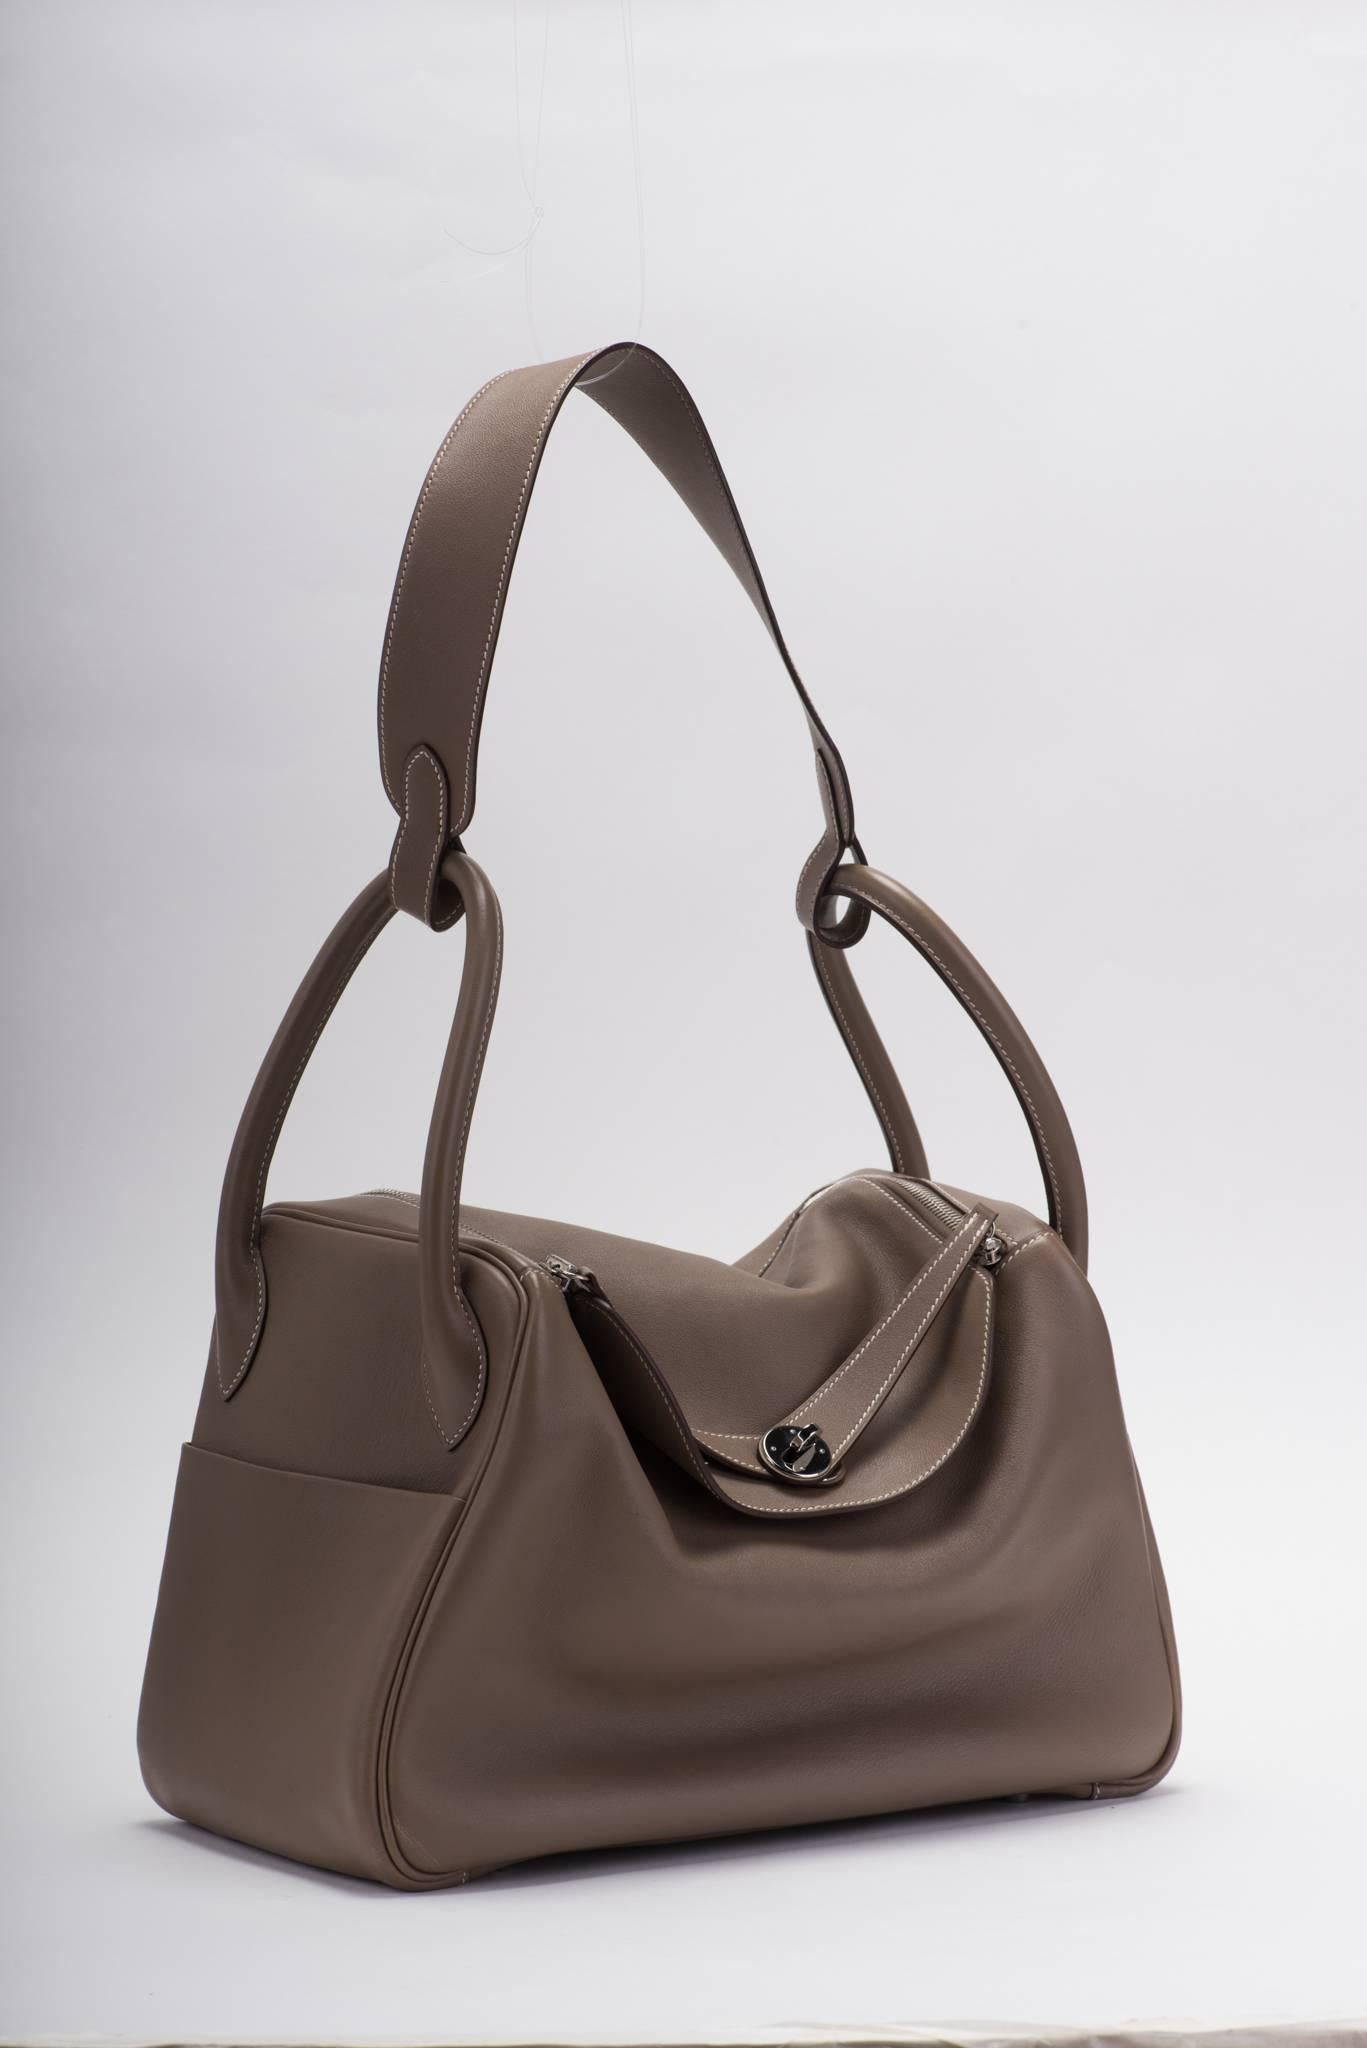 13499 7d01c  australia hermes lindy bag 34 cm in troupe swift leather and  palladium hardware. dated 43651 d16e169795a34